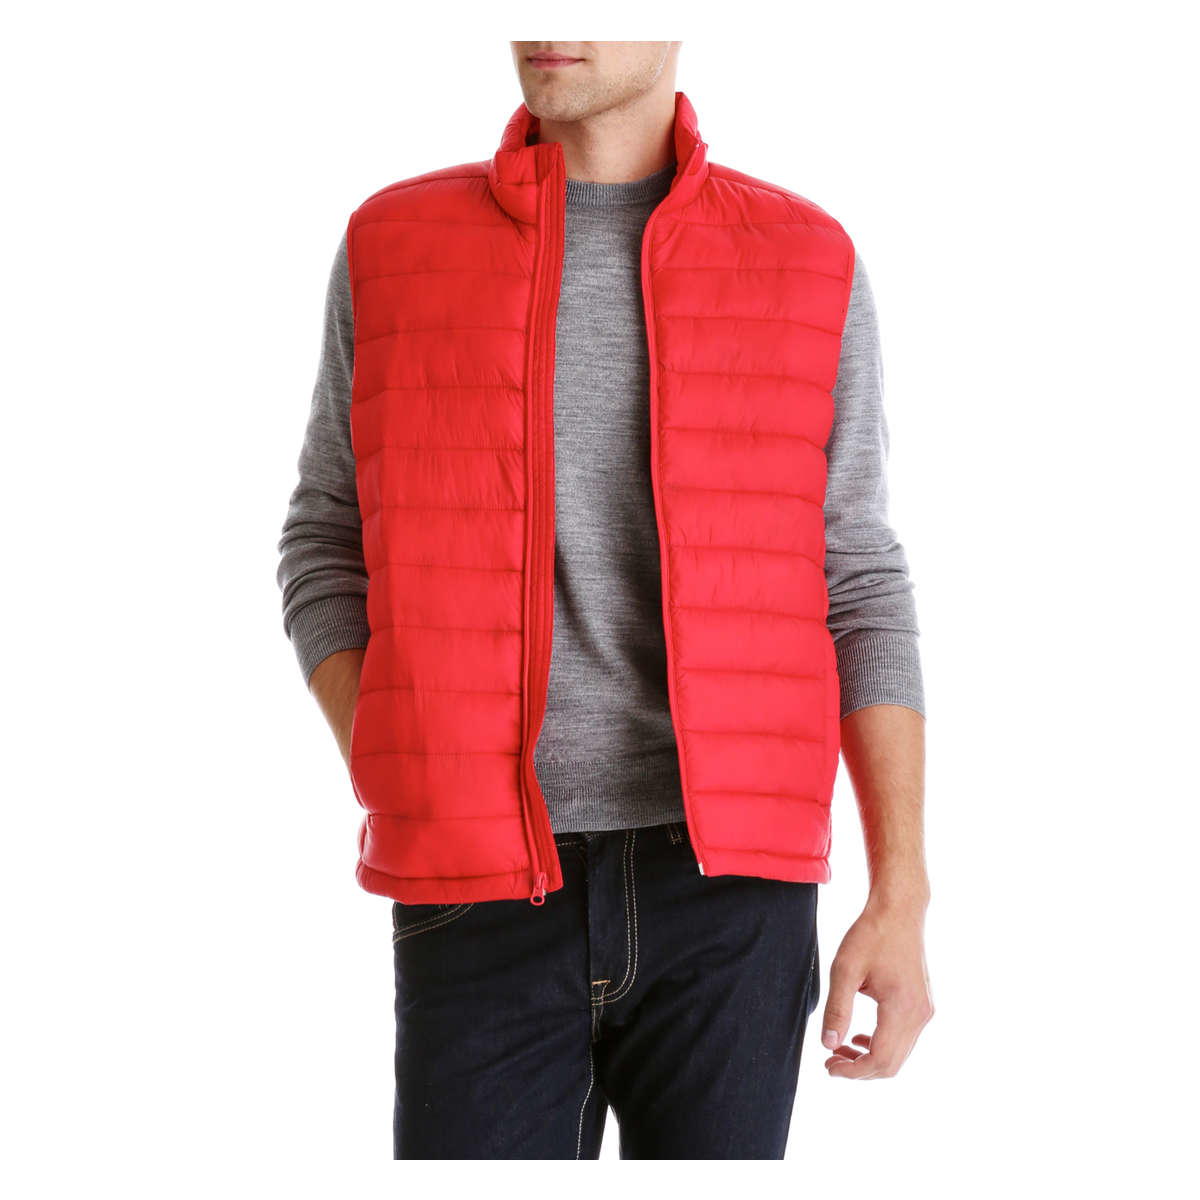 Discover men's puffer vests and warm vest jackets at Burlington. Great prices on all styles, with free shipping available.